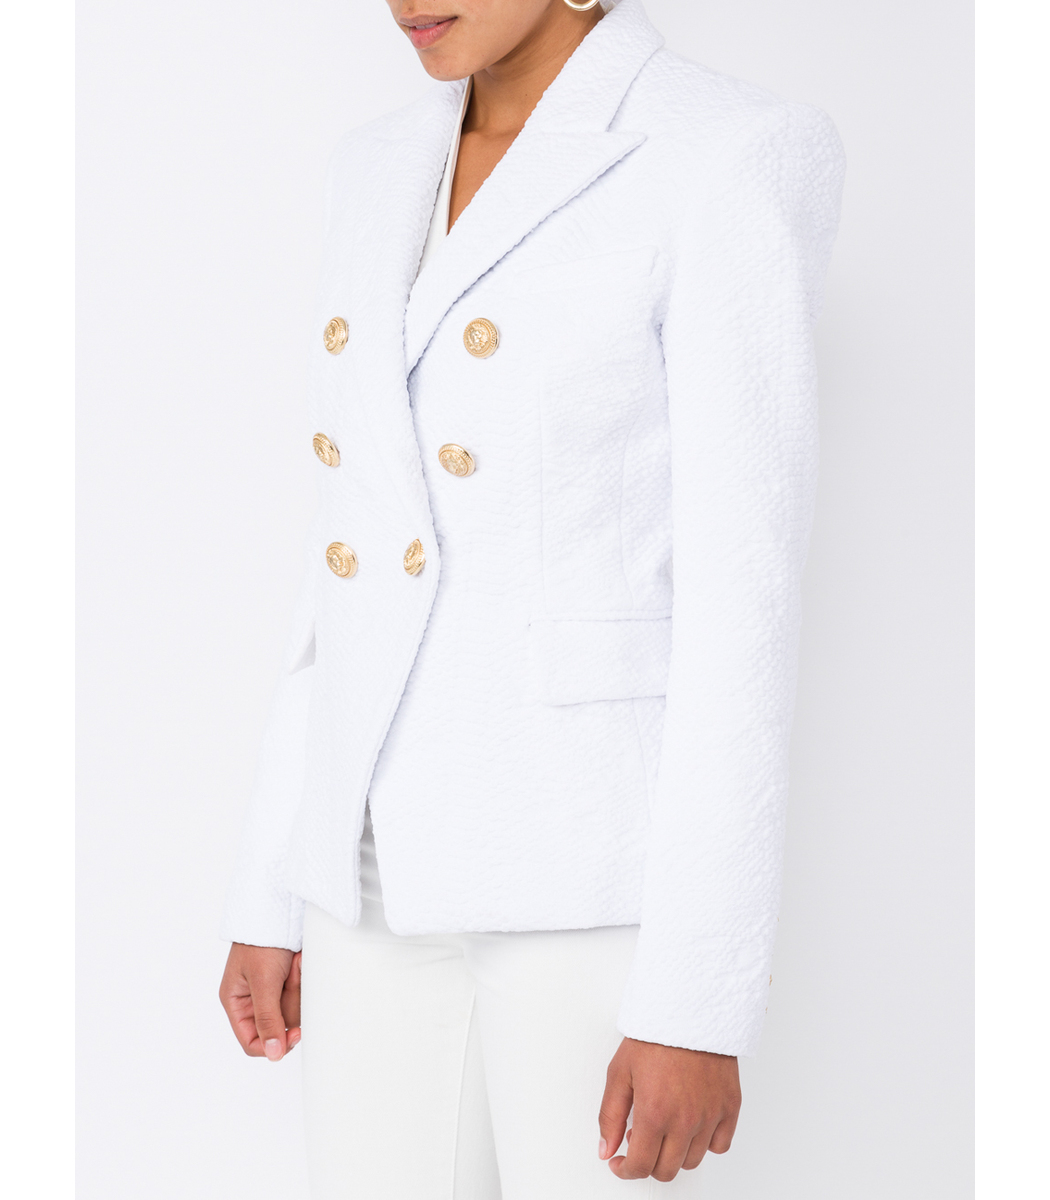 Balmain Size Guide | Balmain Double Breasted Blazer | Balmain Dress Price